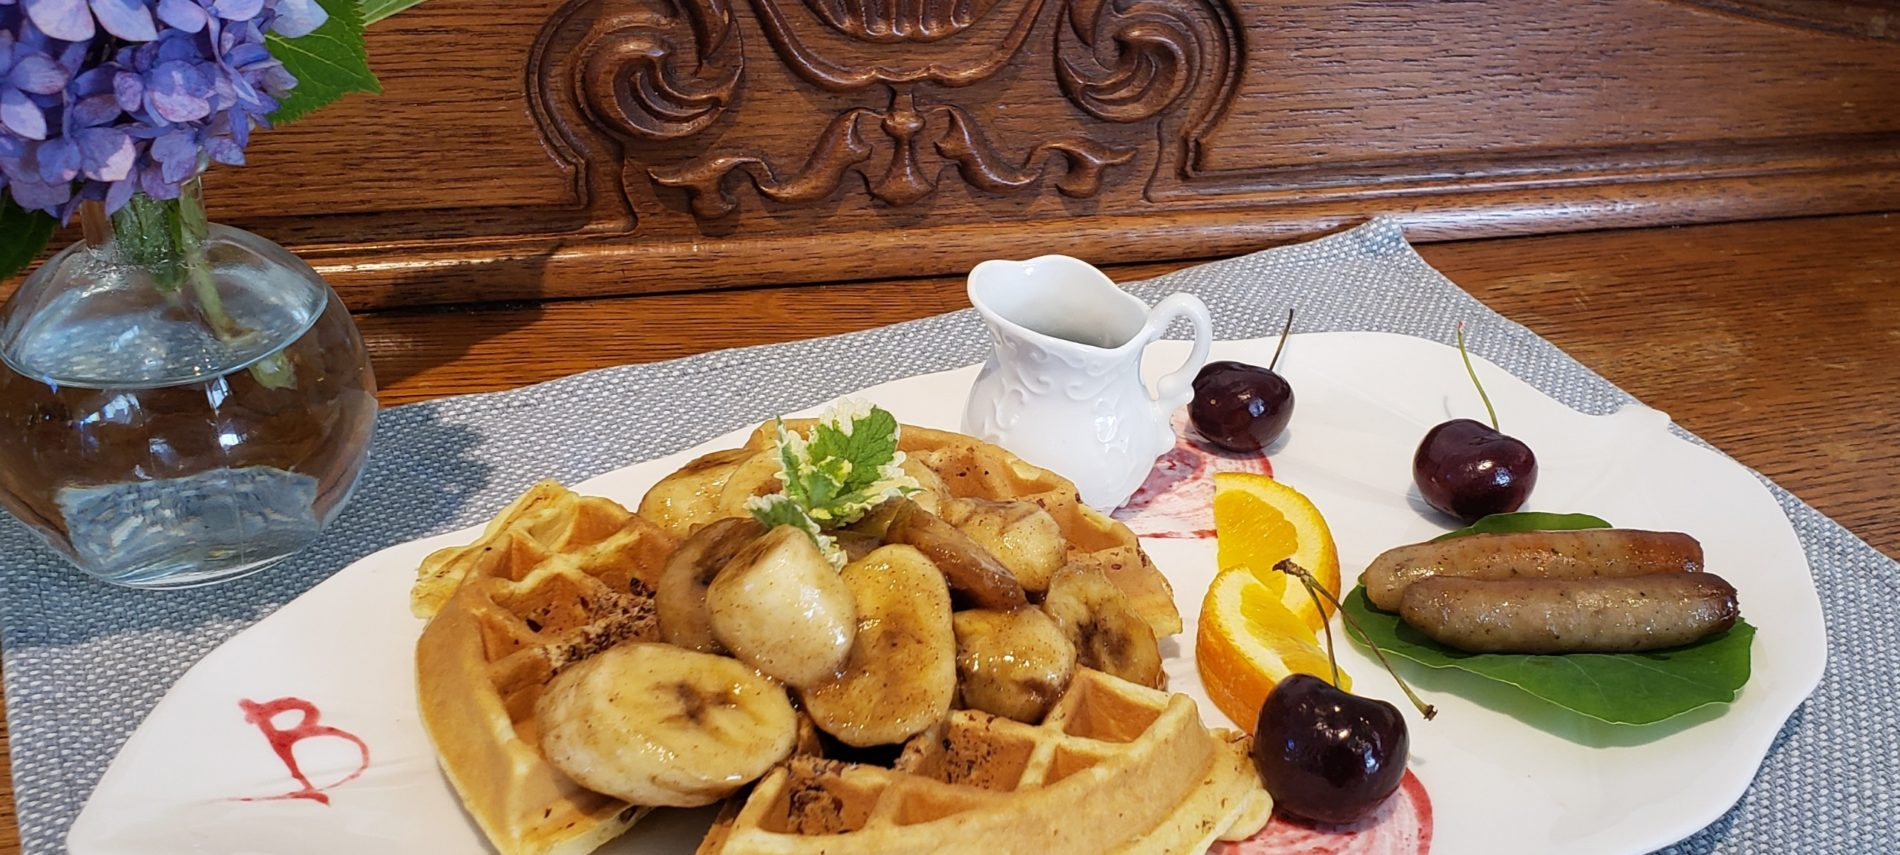 Waffles with Bananas Foster Sauce on top and a size of fruit and sausage on a plate on top of a wooden table